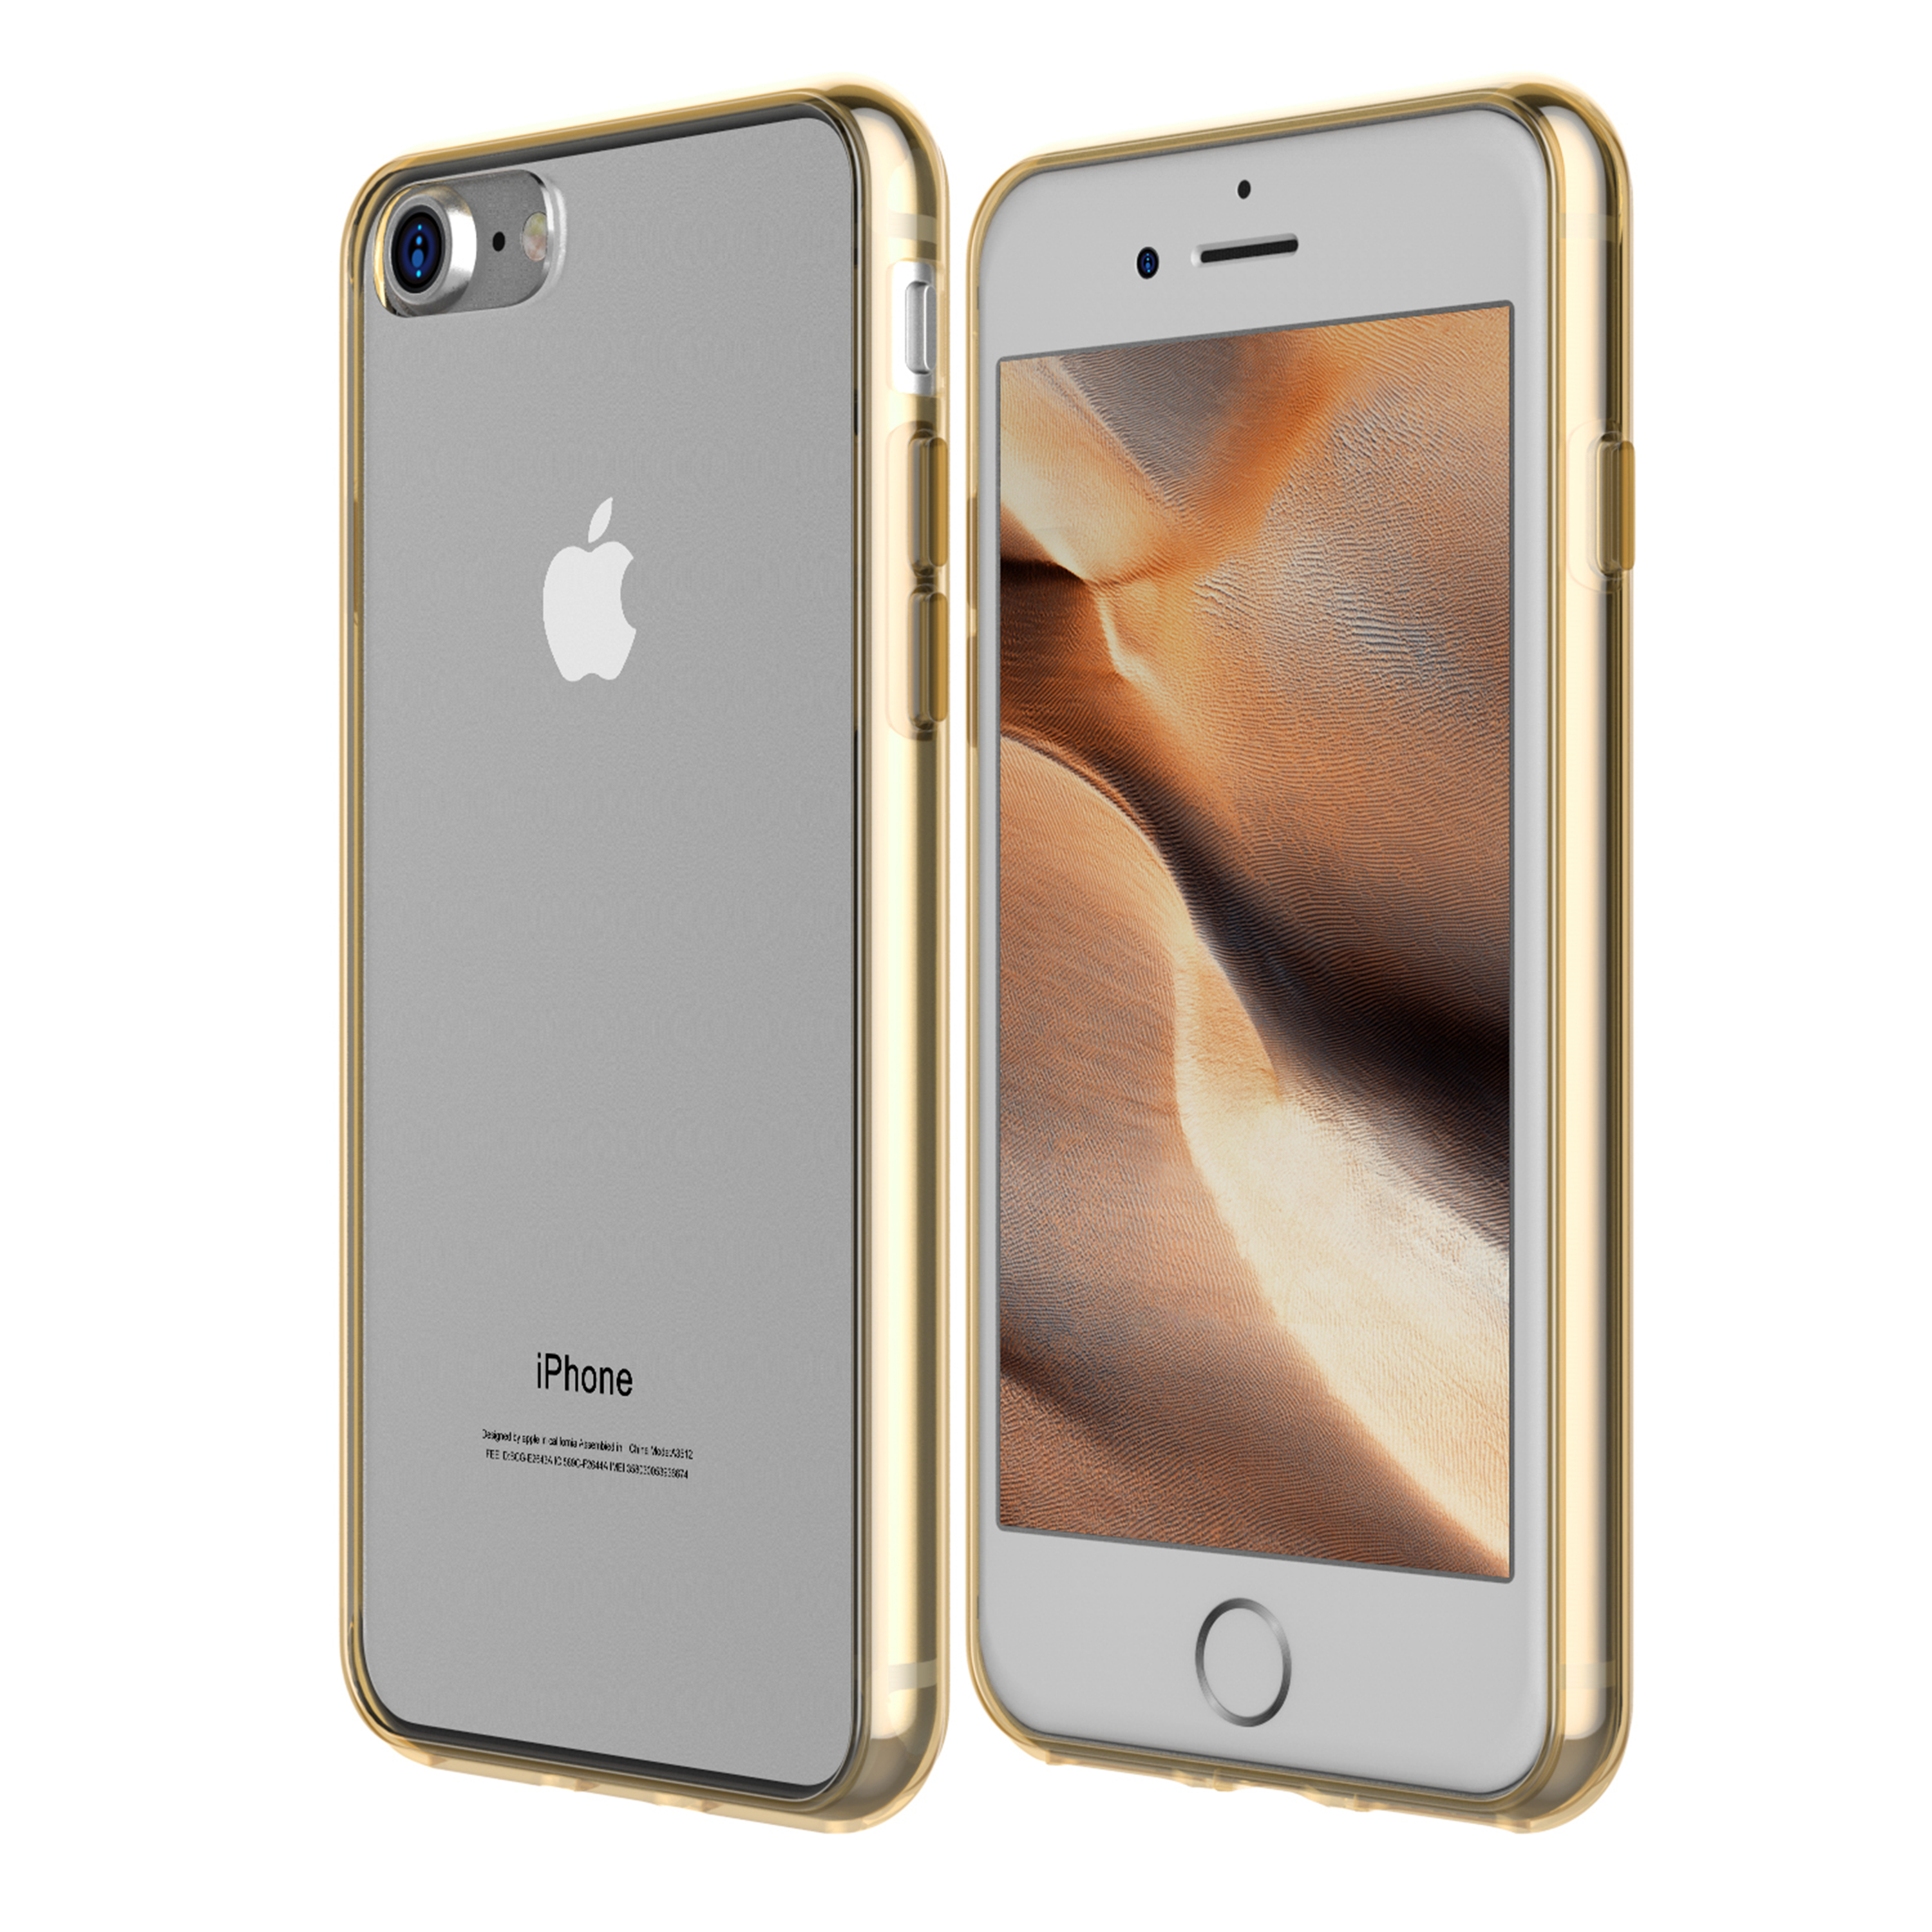 "SuprJETech Apple iPhone 8 / 7 4.7"" Bumper Case with Scratch-Resistant Clear Back For iPhone 8 and iPhone 7"